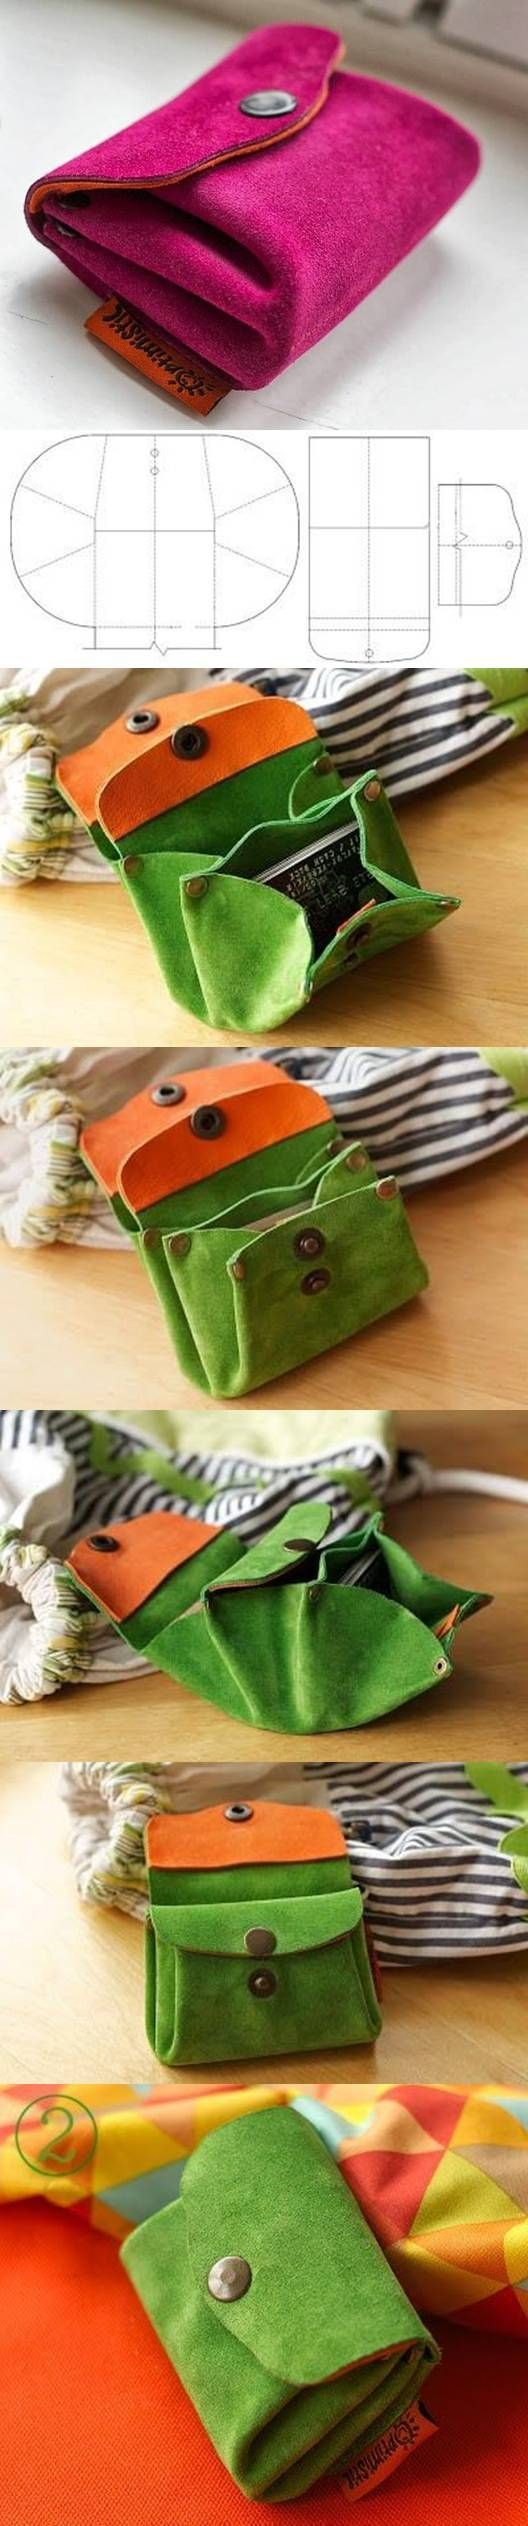 DIY Purse - I wanna make it from felt!